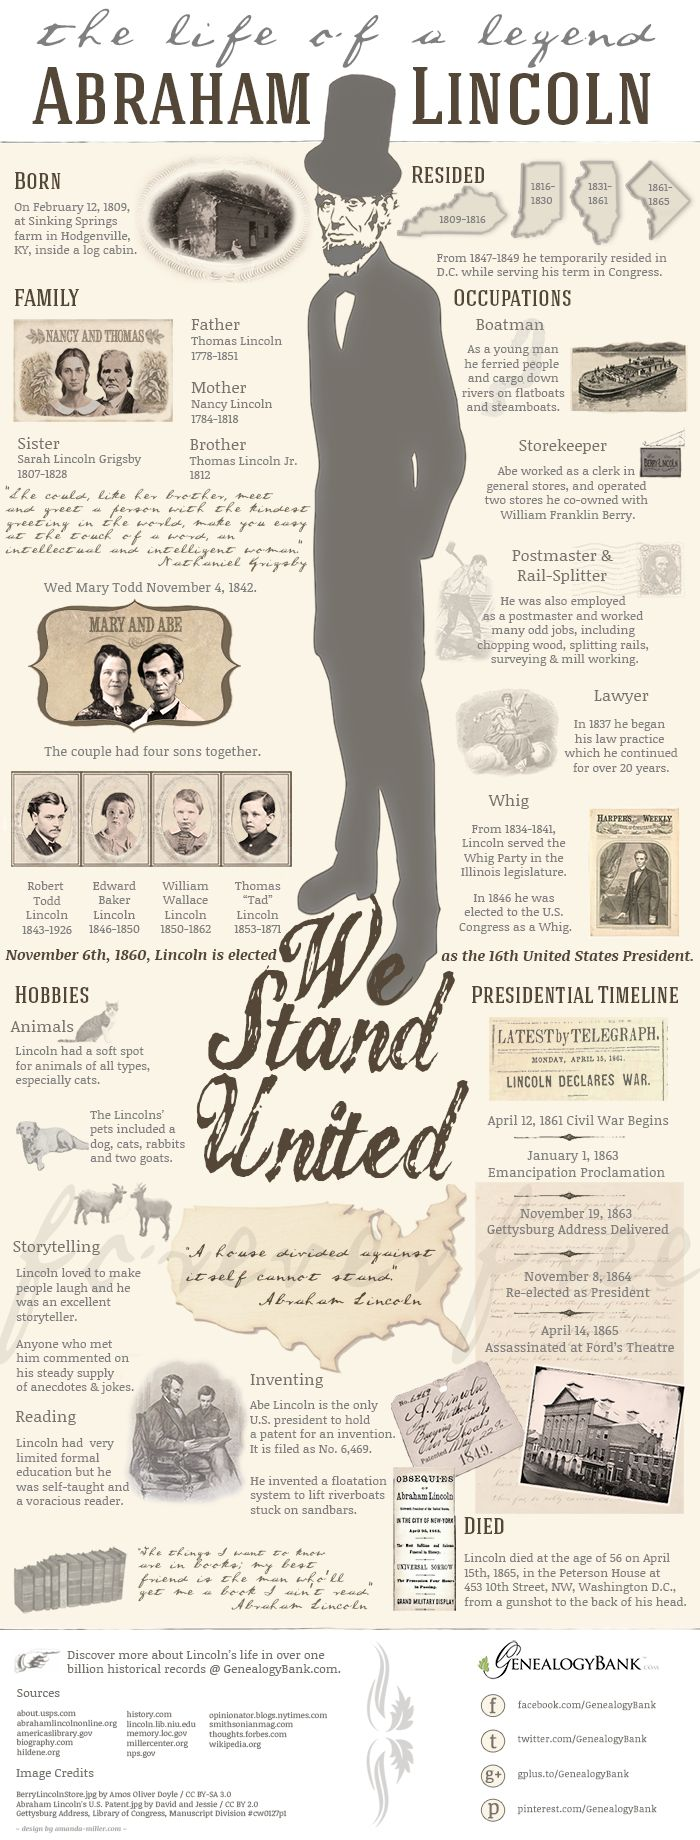 The Life of a Legend: President Abraham Lincoln Infographic. Get details about Abraham Lincoln's genealogy & family tree, discover facts about his life & more in this Infographic from GenealogyBank.com.